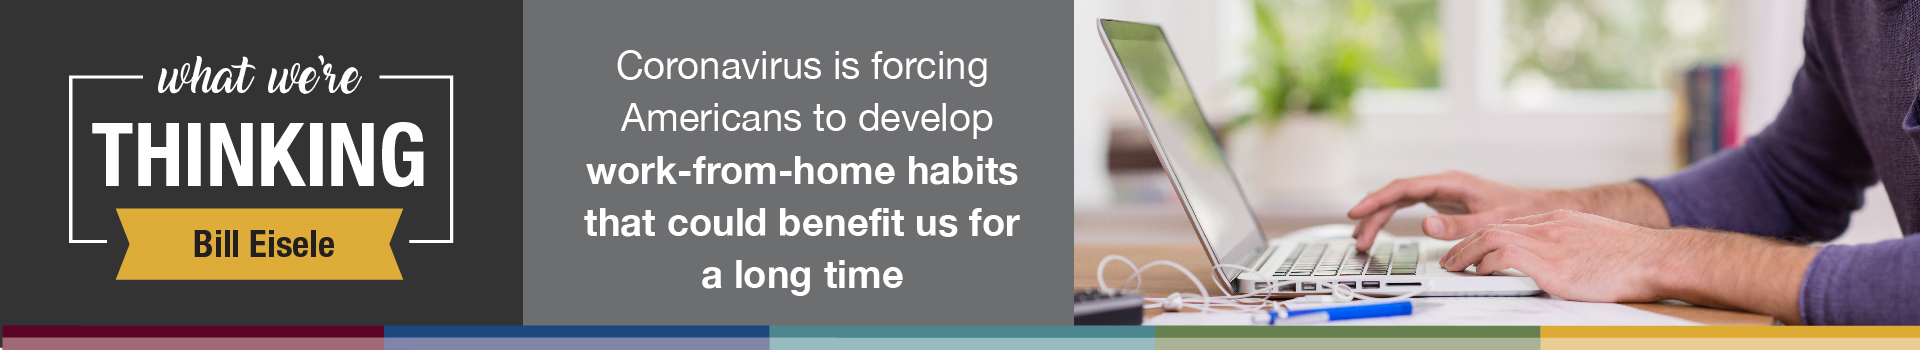 Coronavirus Is Forcing Americans to Develop Work-From-Home Habits That Could Benefit Us for a Long Time